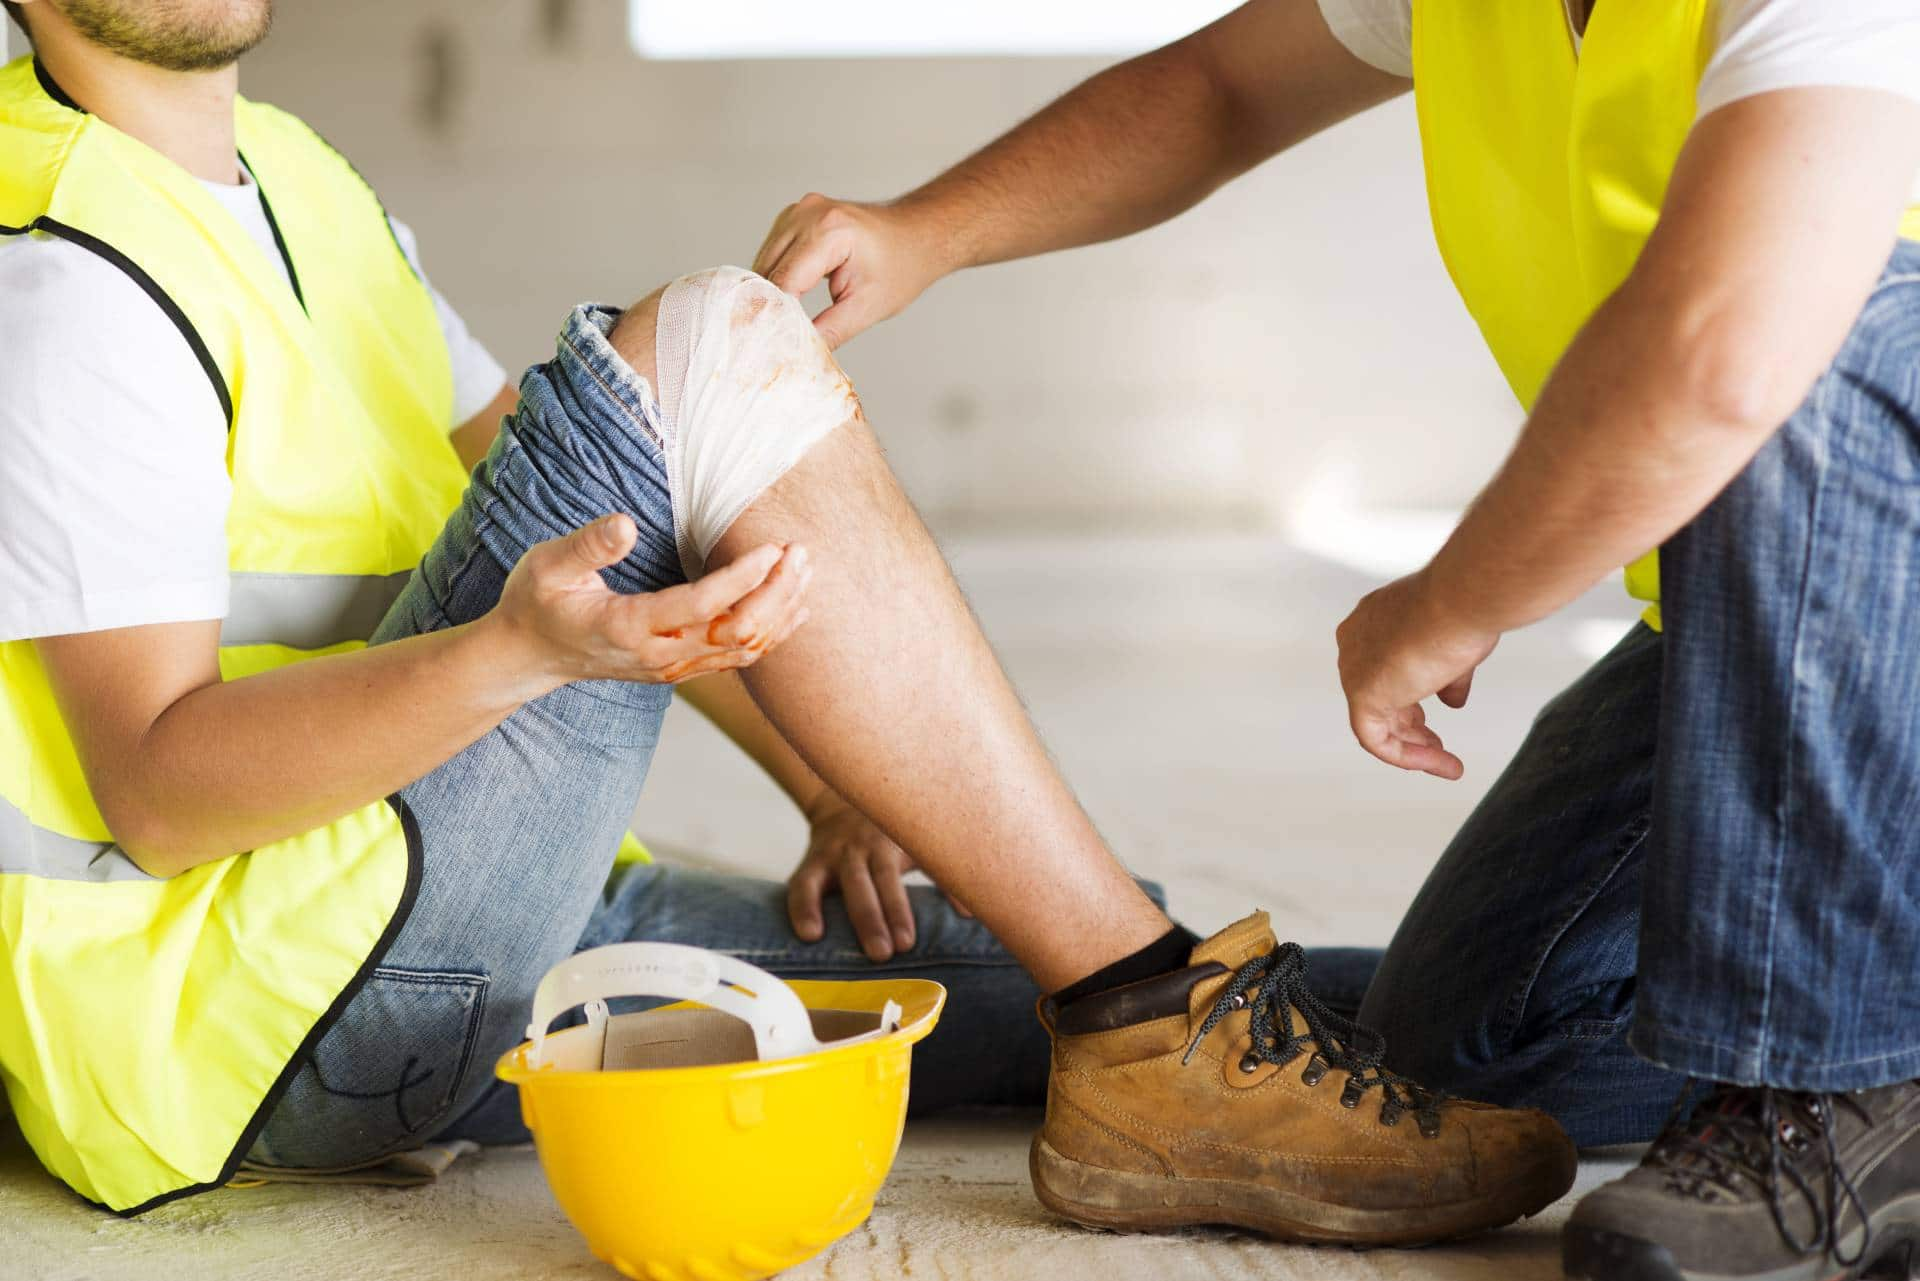 Hurt on the job? Schedule a free consultation with our personal injury lawyers at the Angell Law firm in Morningside-Lenox Park.